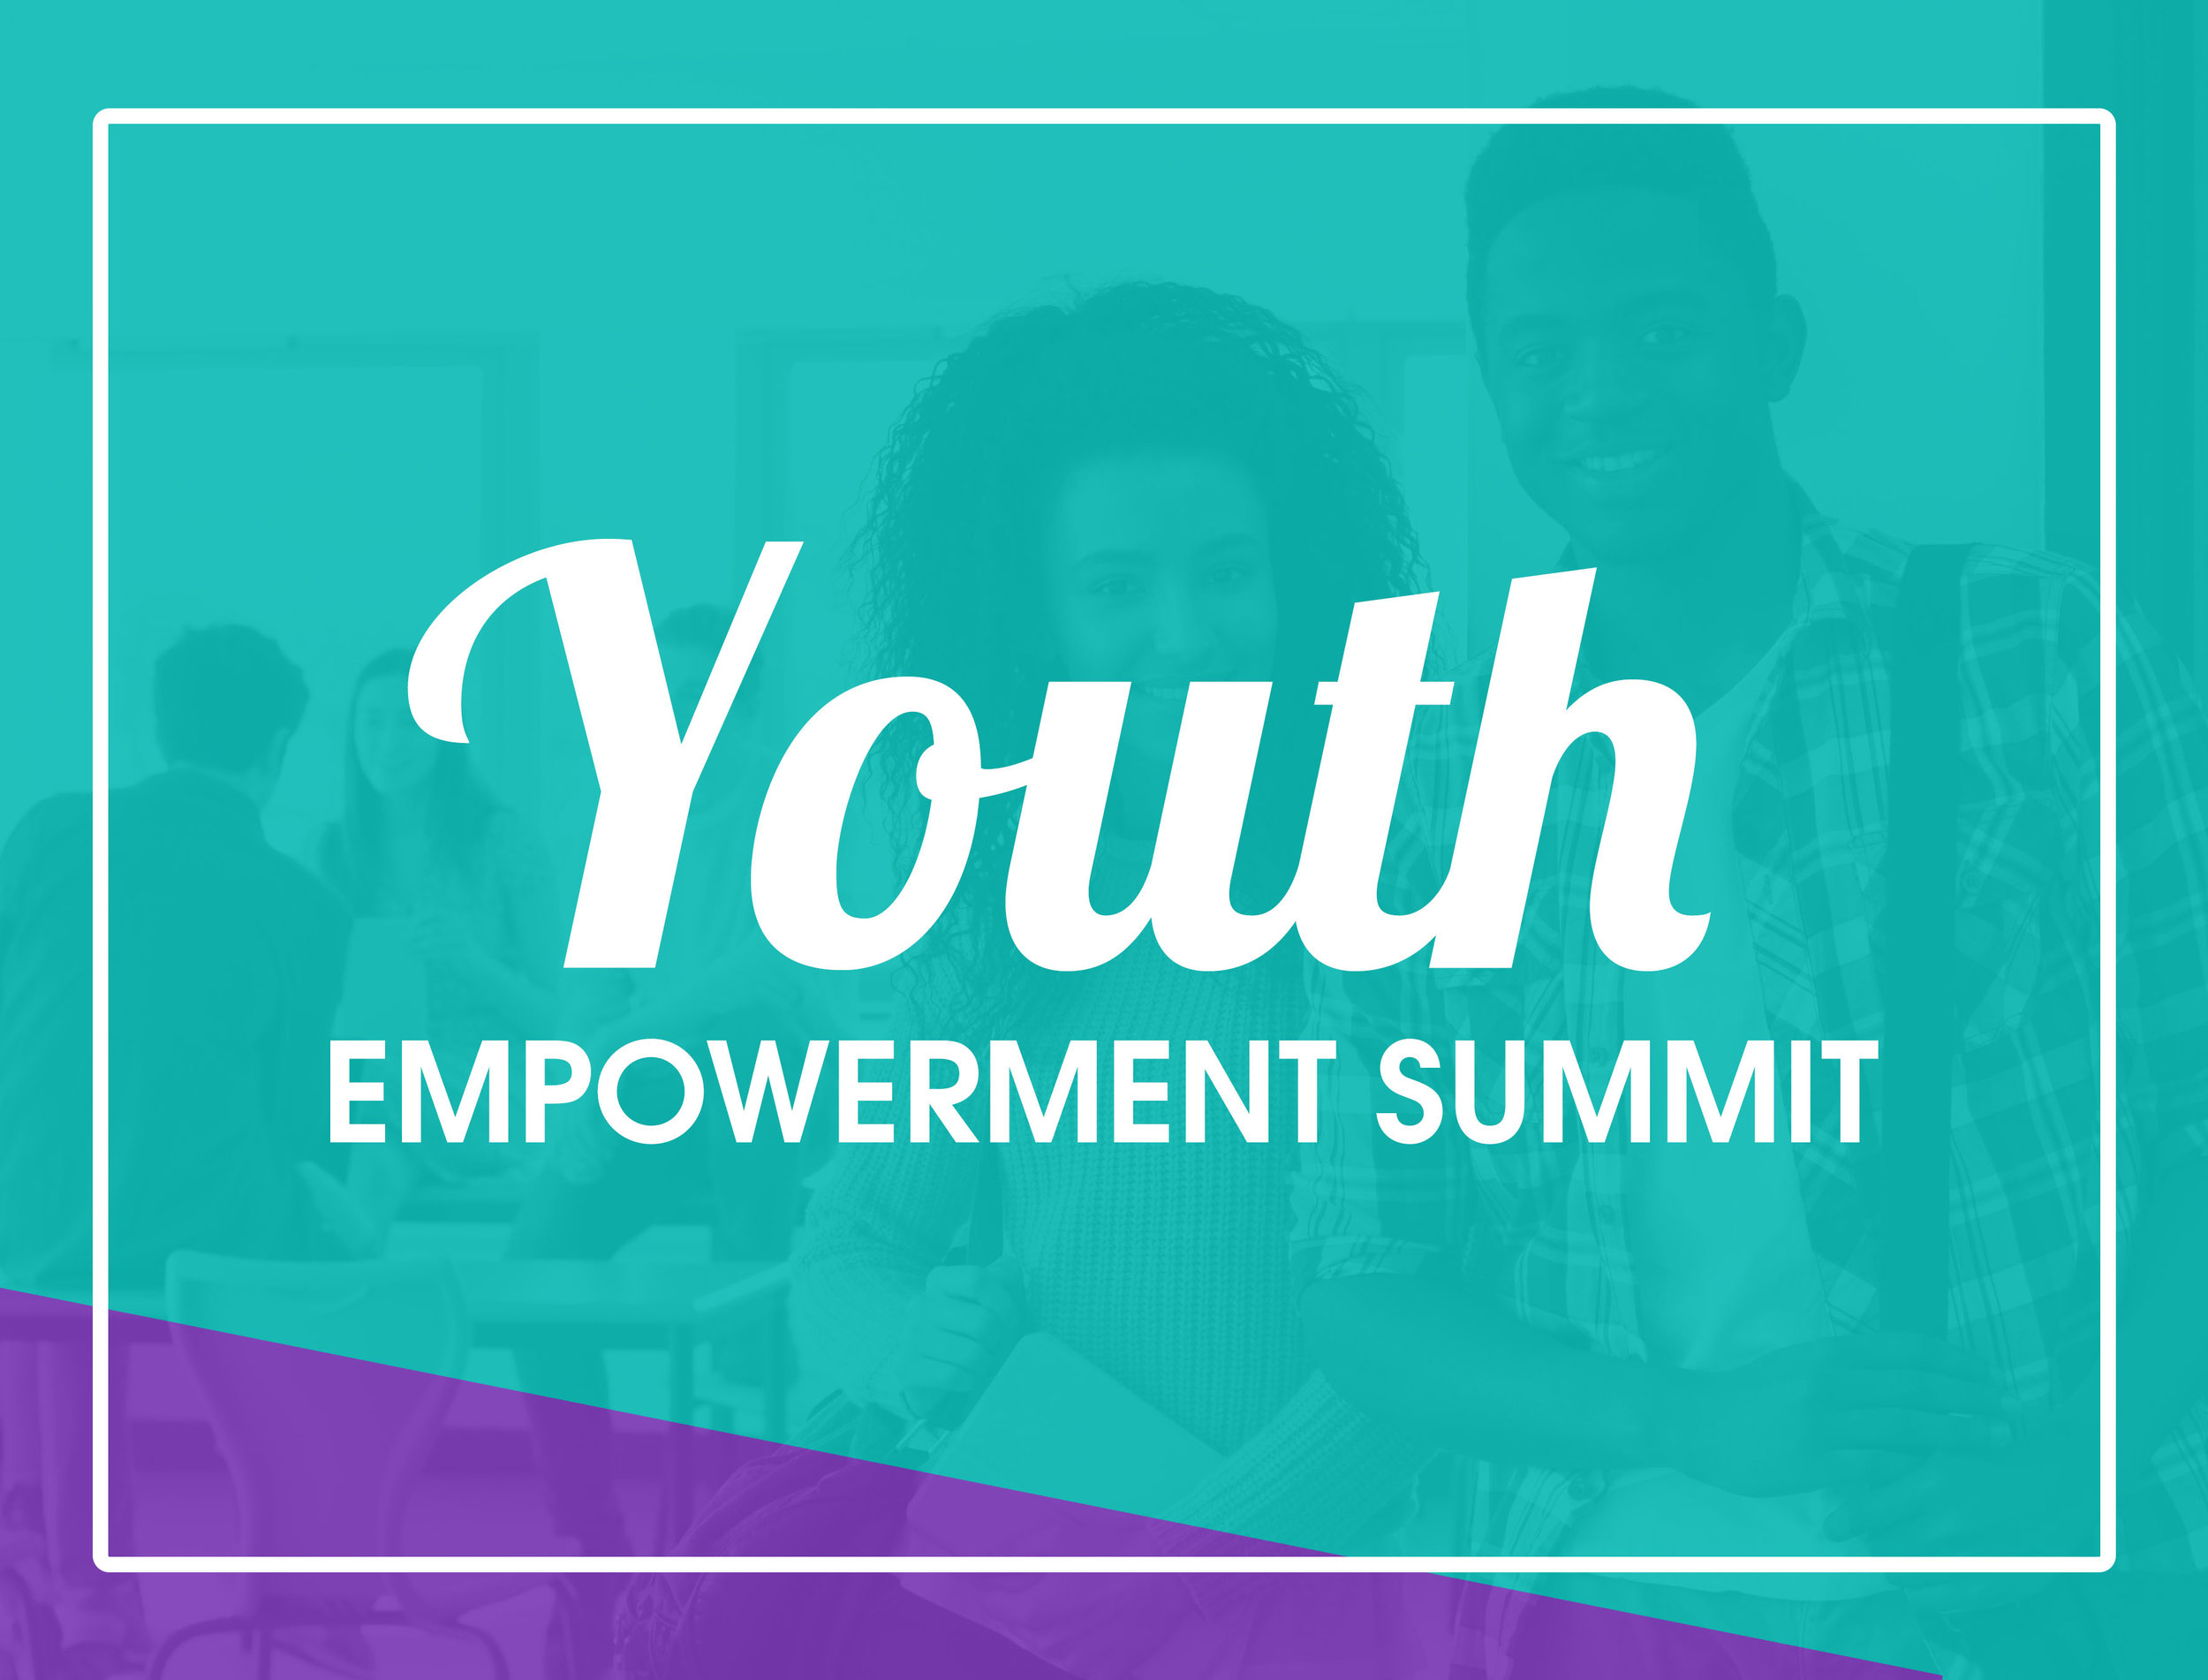 YES Cleveland is a one day summit for youth ages 13-19 designed to build the next generation of leaders, while preparing them to overcome the issues they deal with on a daily basis, preventing teen pregnancy, and premature fathers.